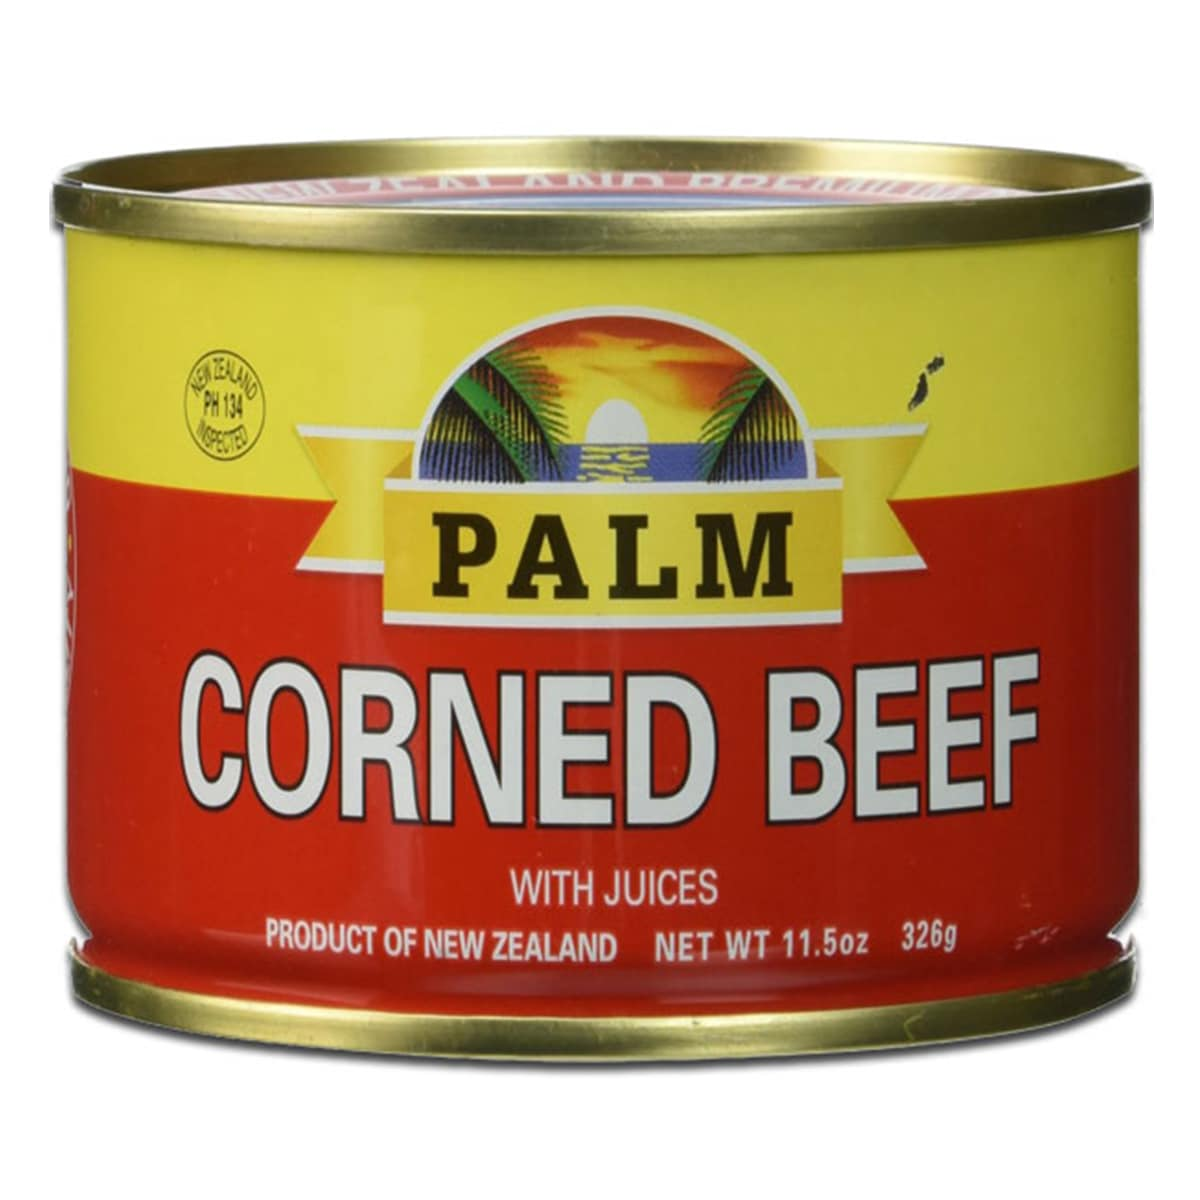 Buy Palm Corned Beef with Juices - 326 gm